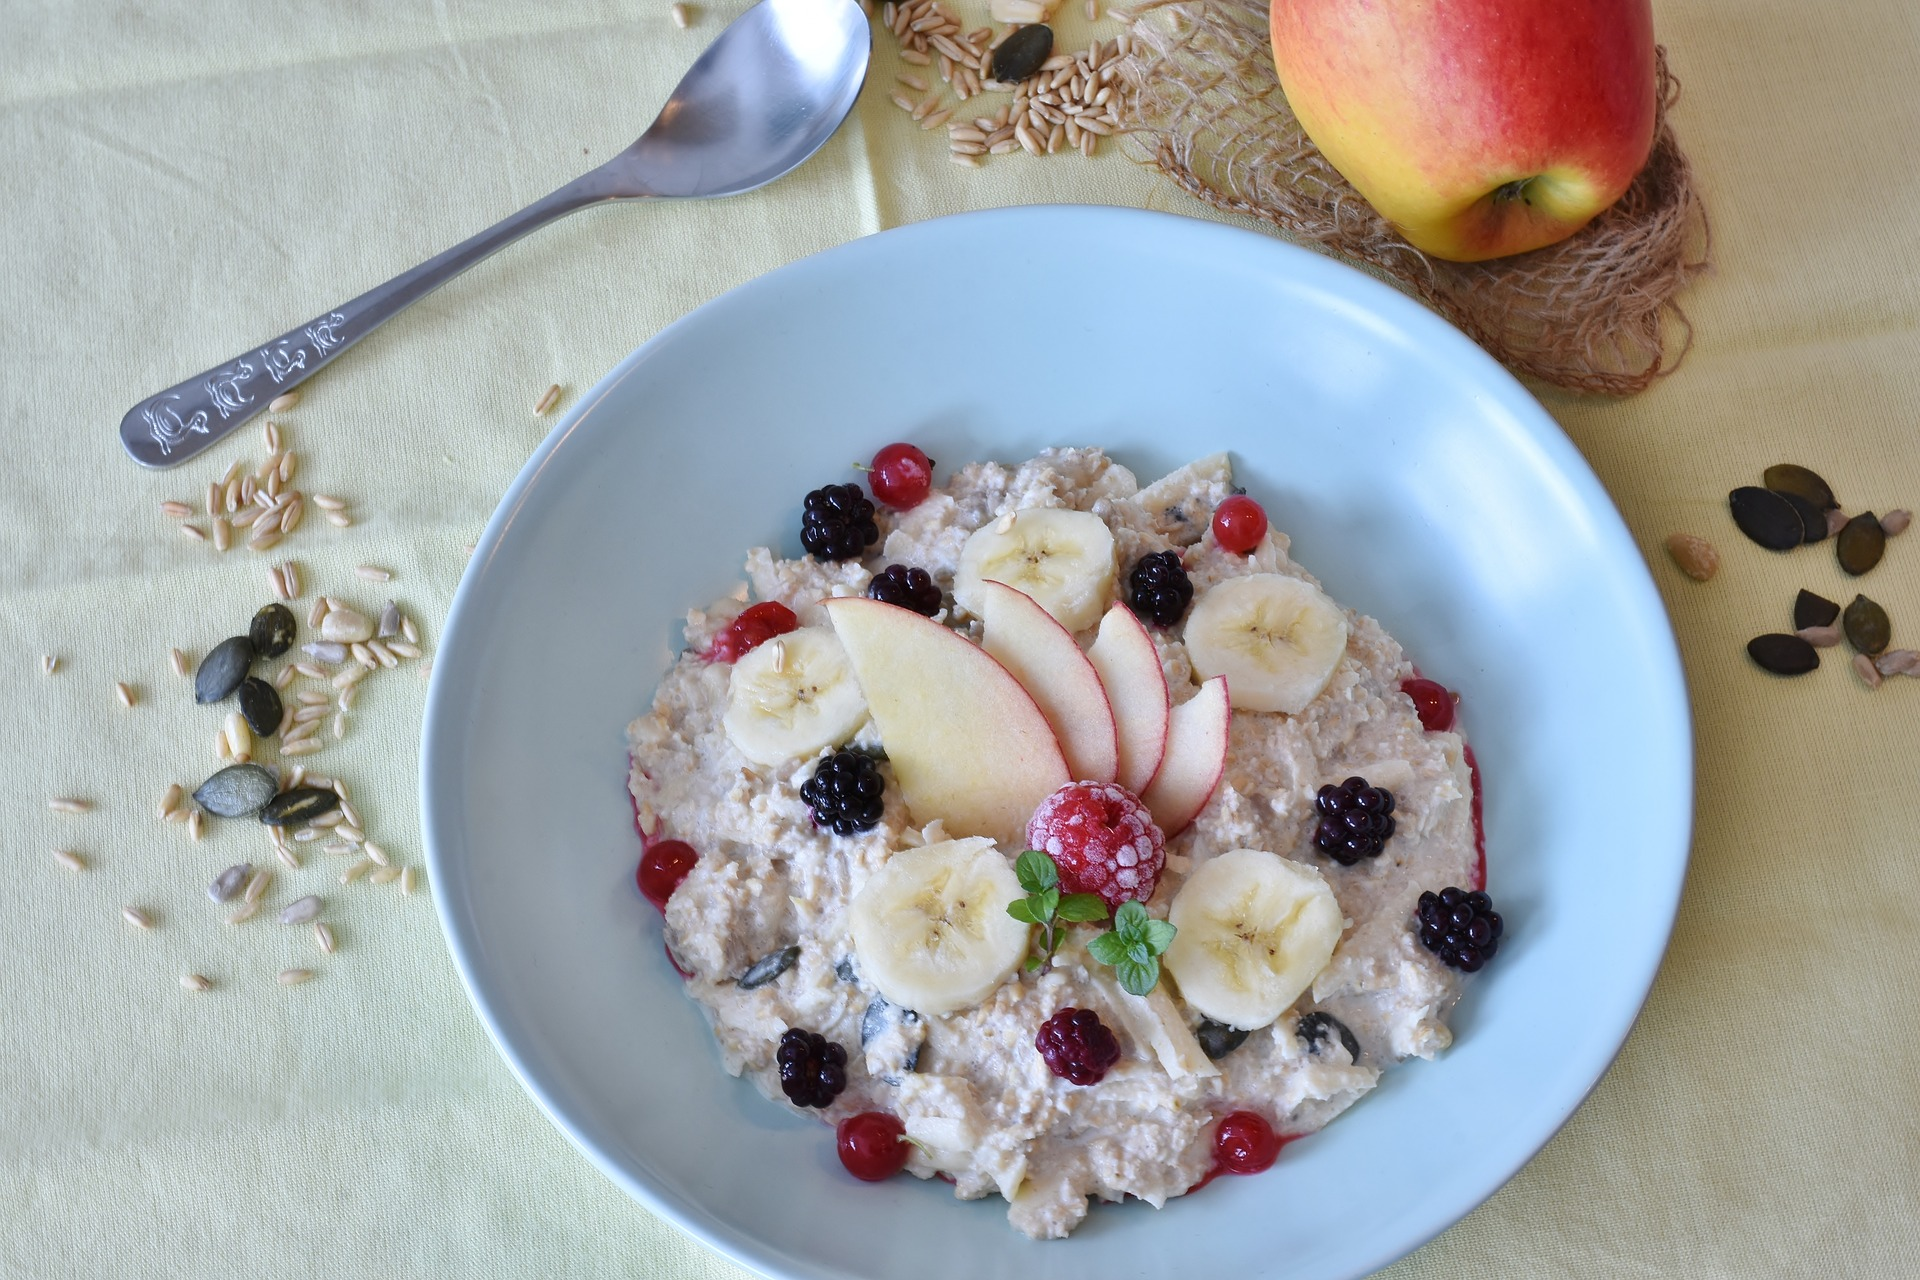 16 Healthy Snack Ideas to Satisfy Your Hunger